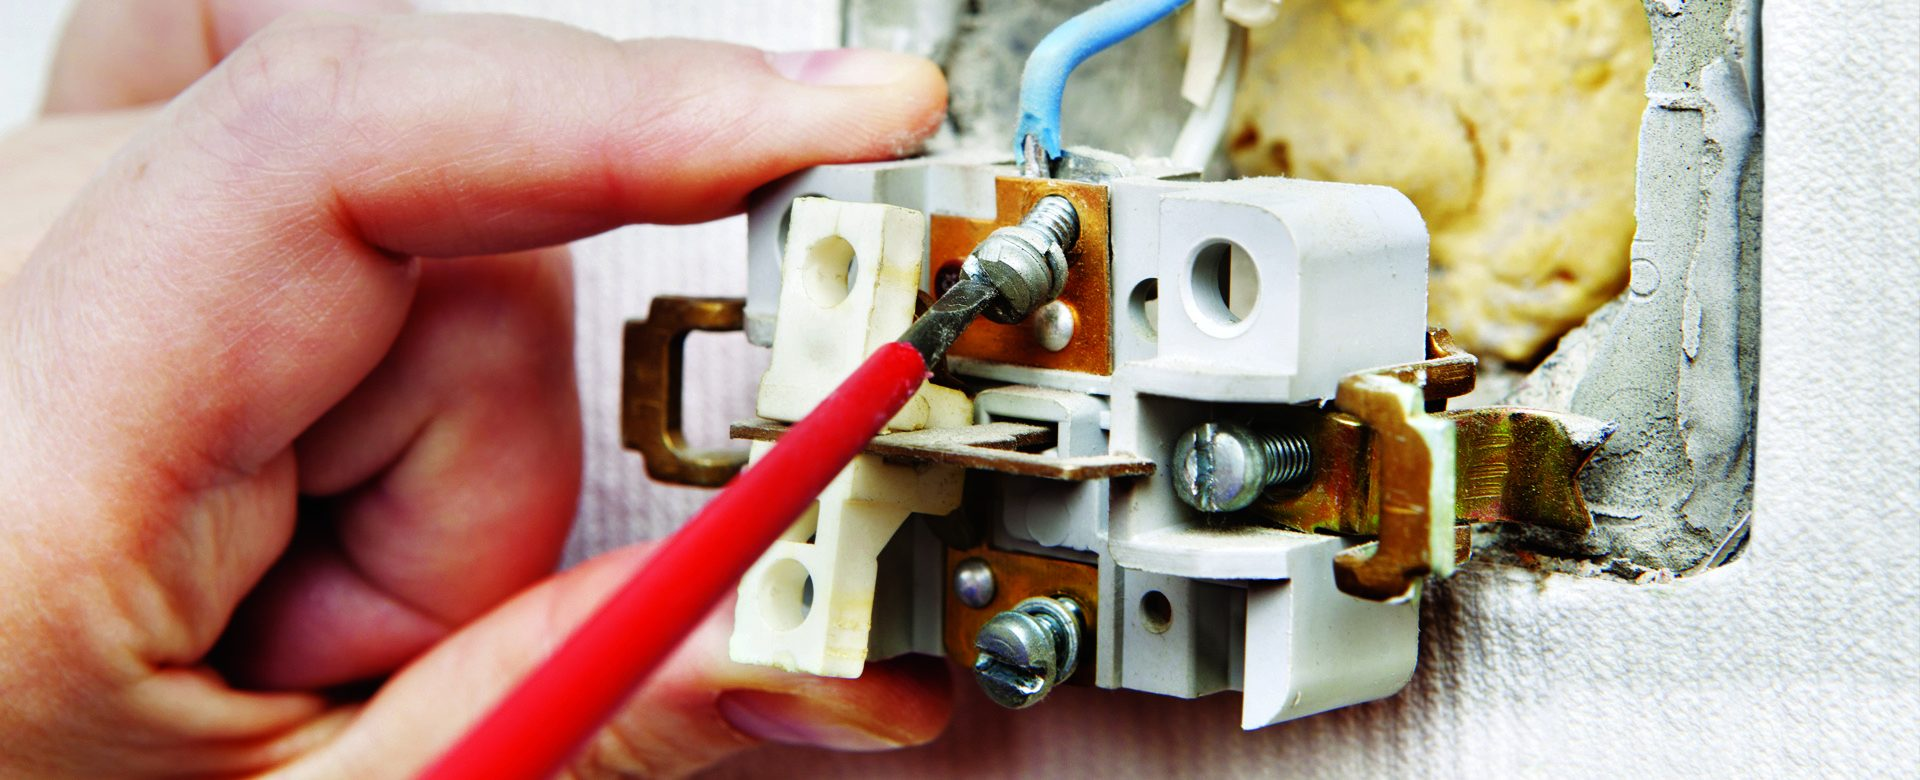 Residential Electrical Wiring As Well As Residential Electrical Wiring